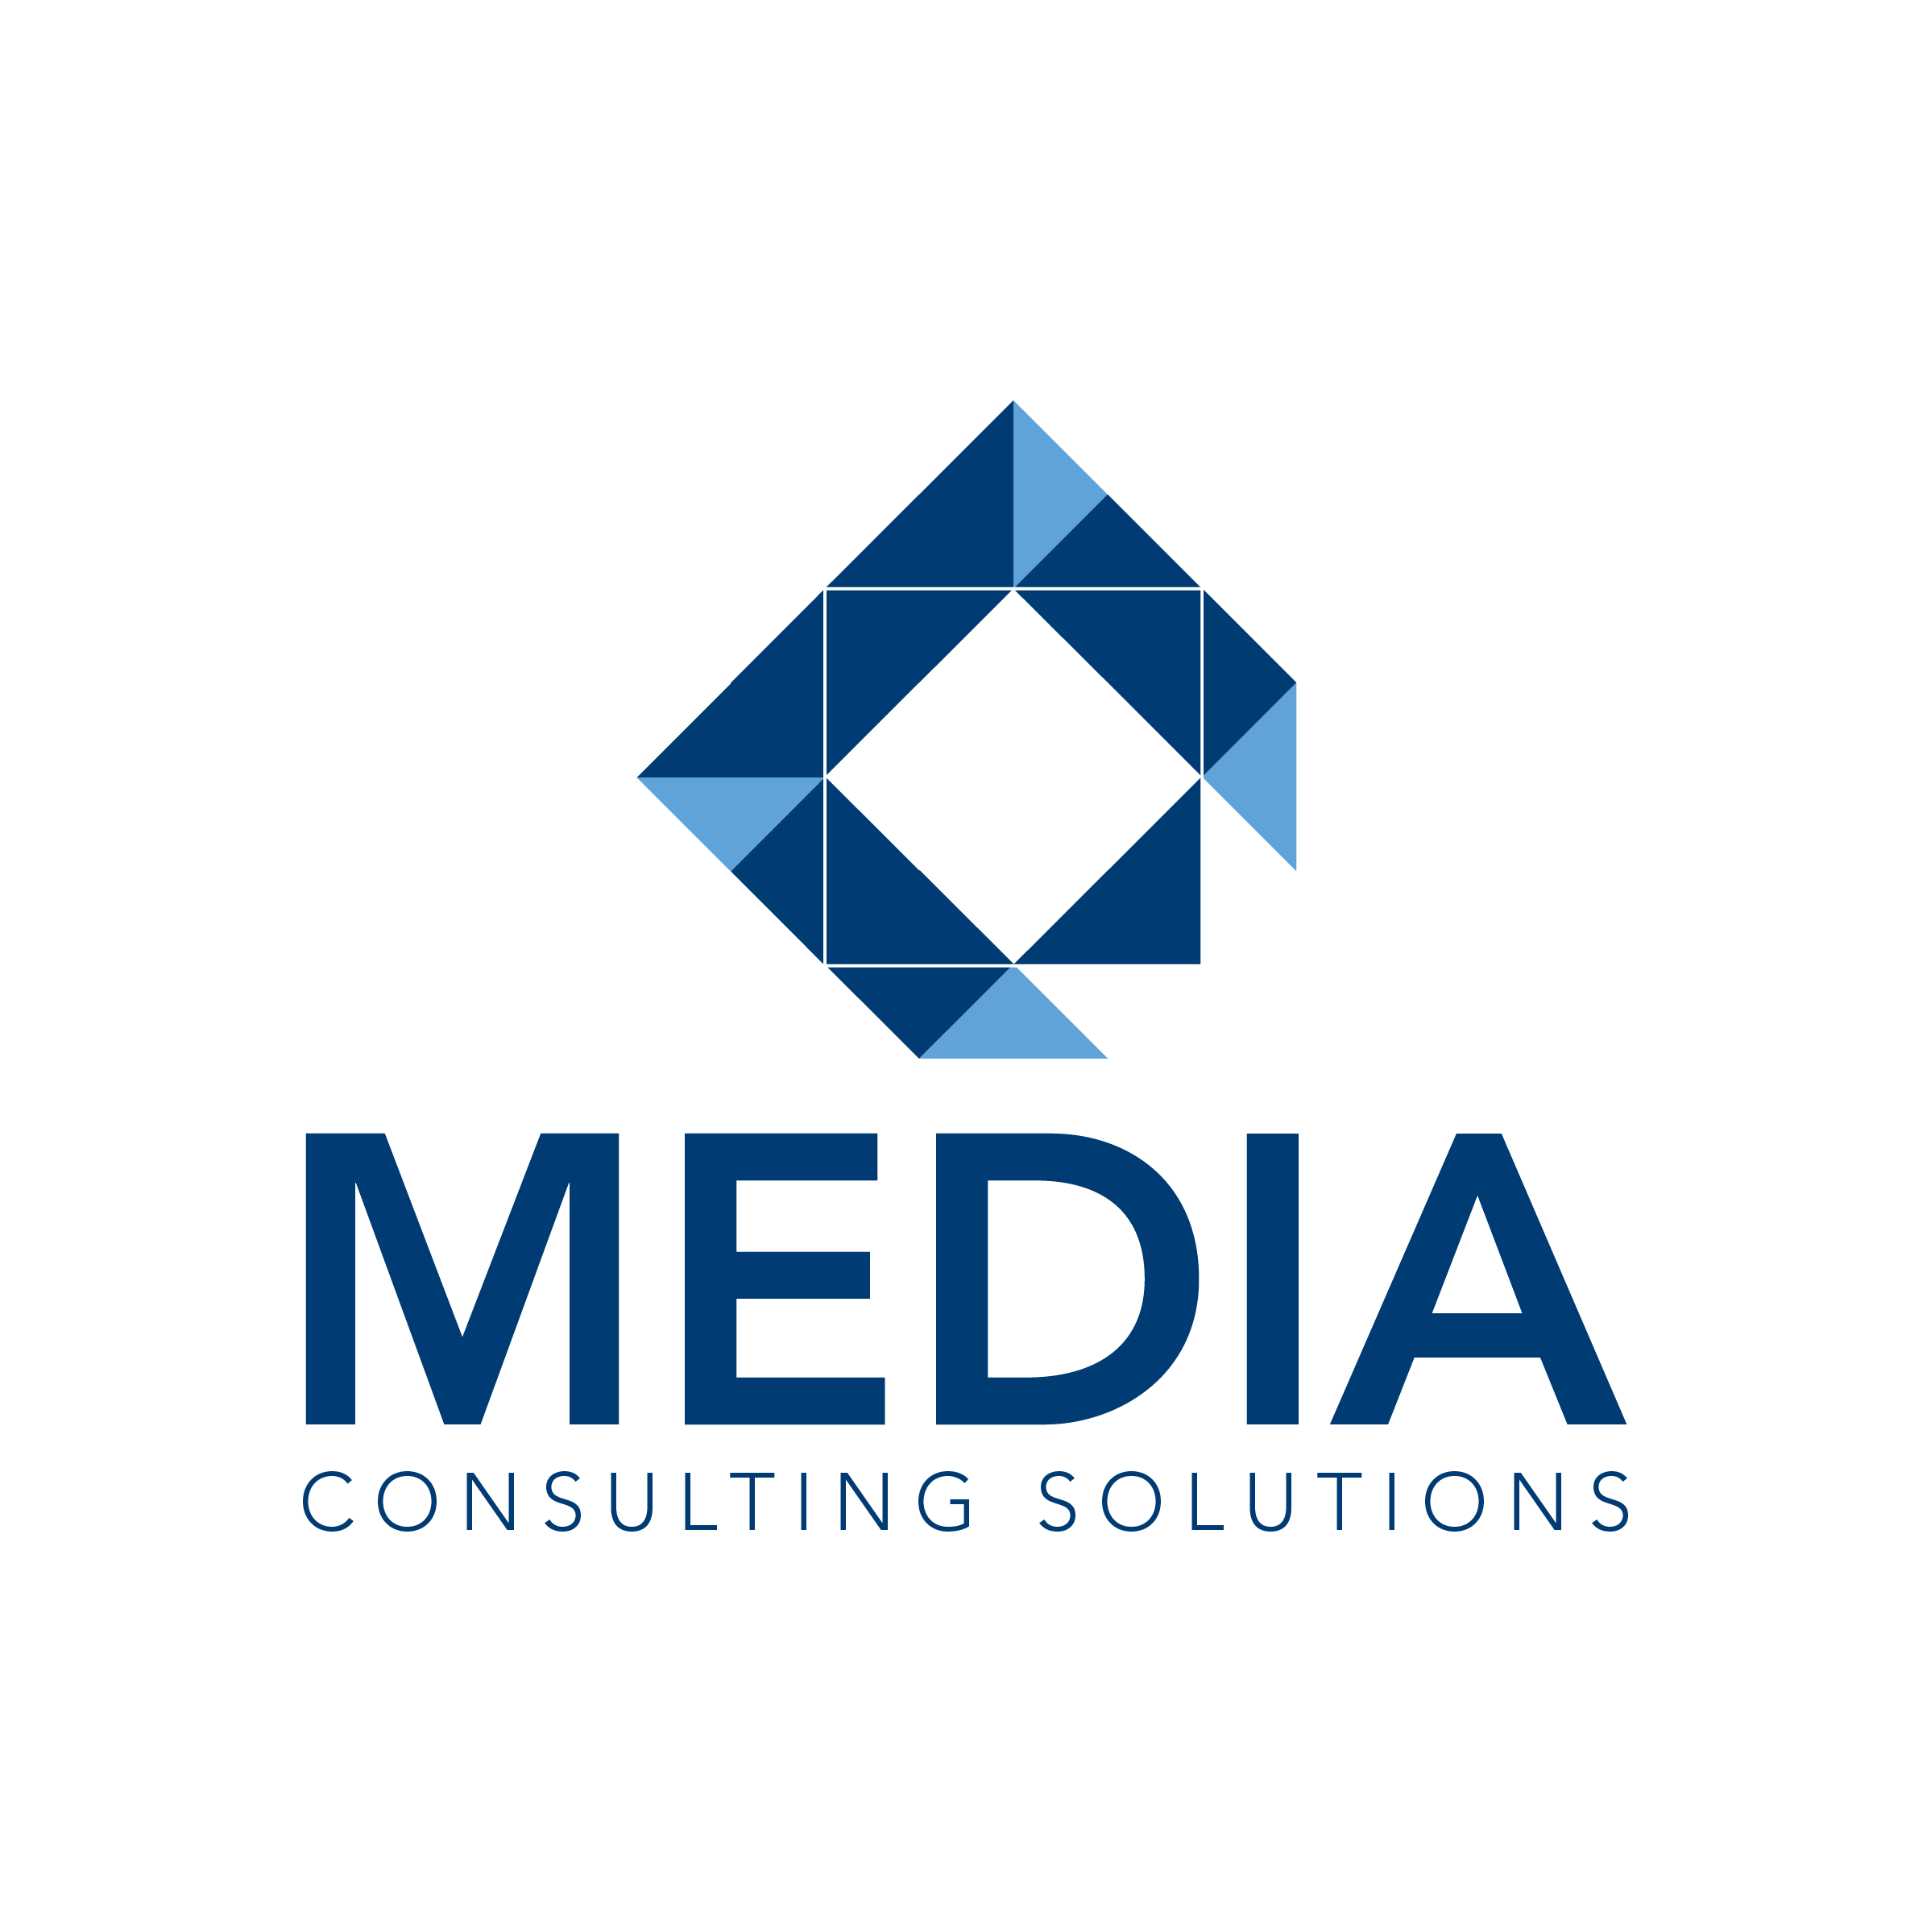 Media Consulting Solutions